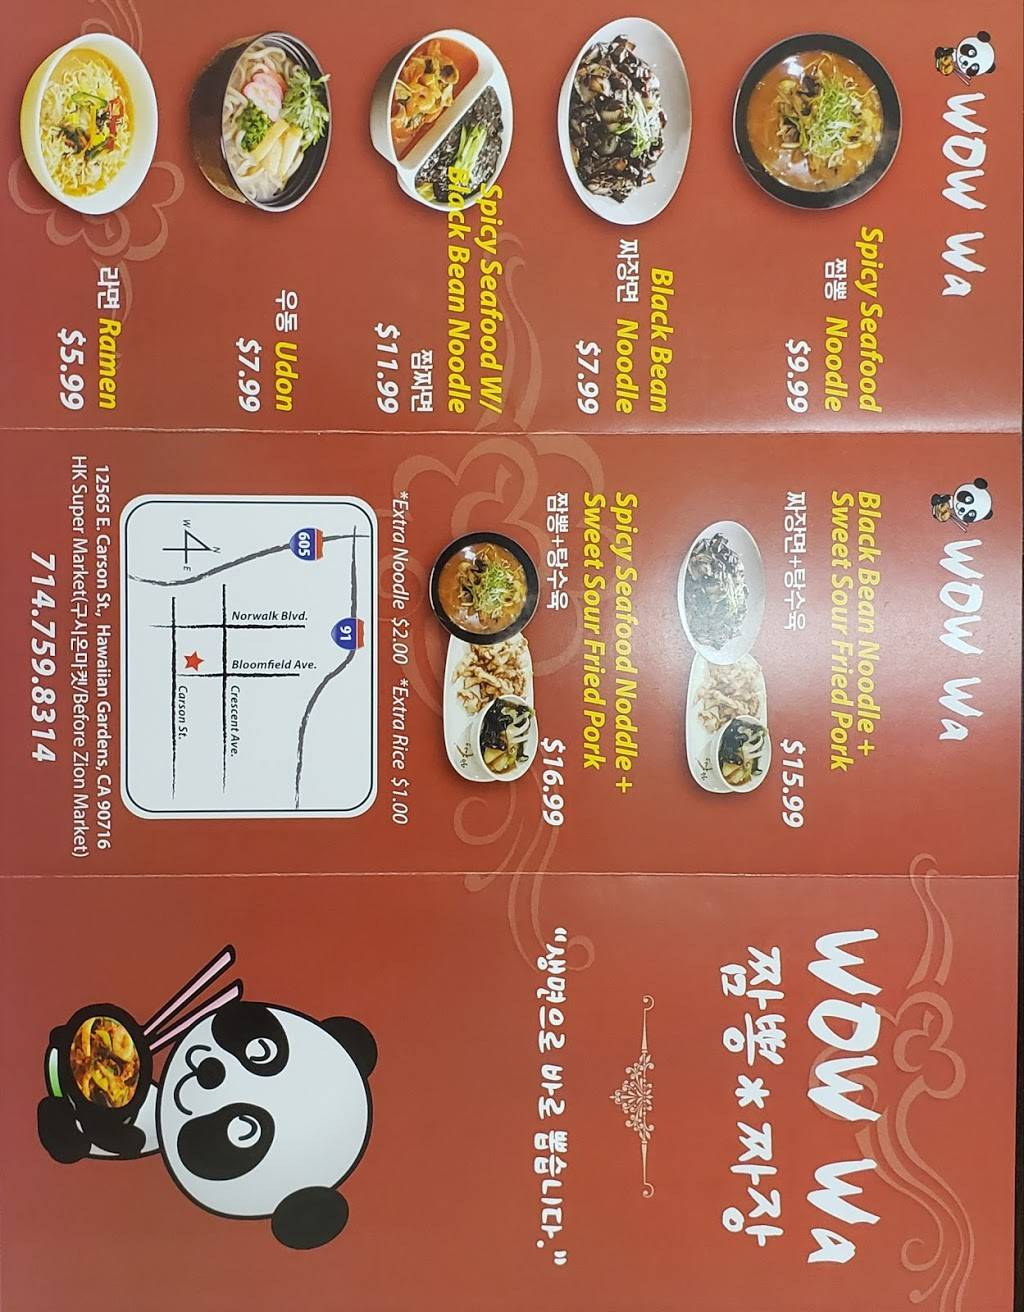 WOW WA | restaurant | 12565 E Carson St, Hawaiian Gardens, CA 90716, USA | 7147598314 OR +1 714-759-8314